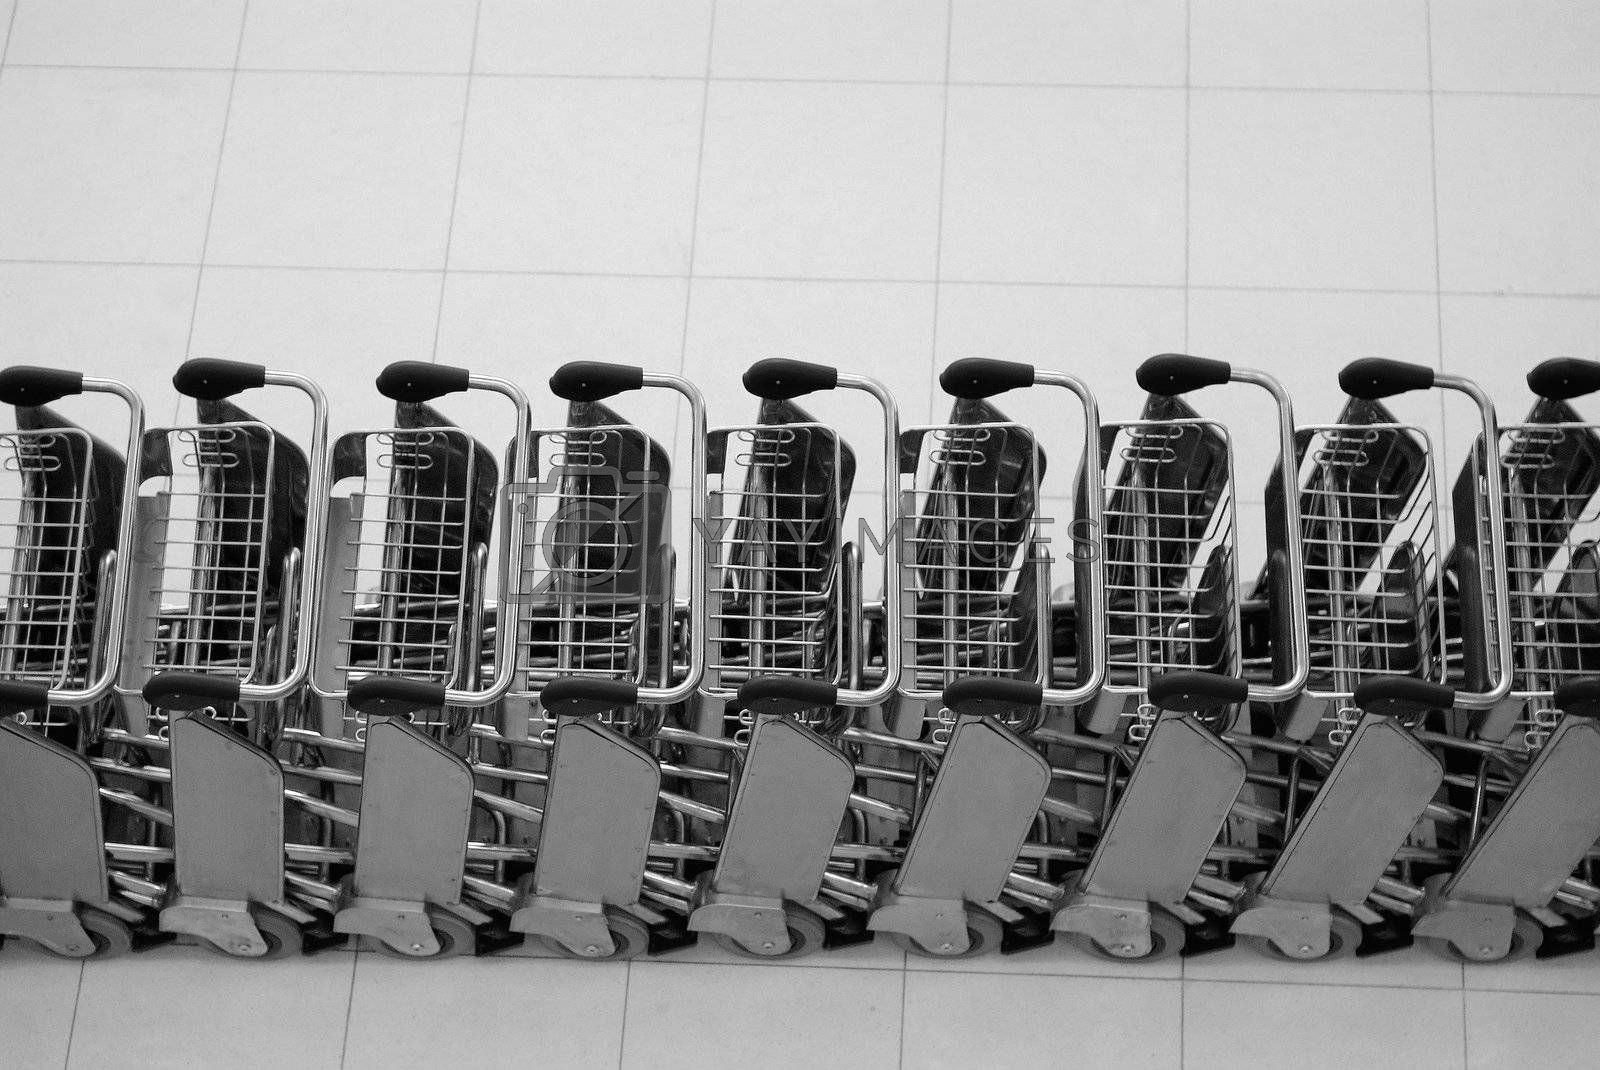 Baggage trolleys at an airport by epixx